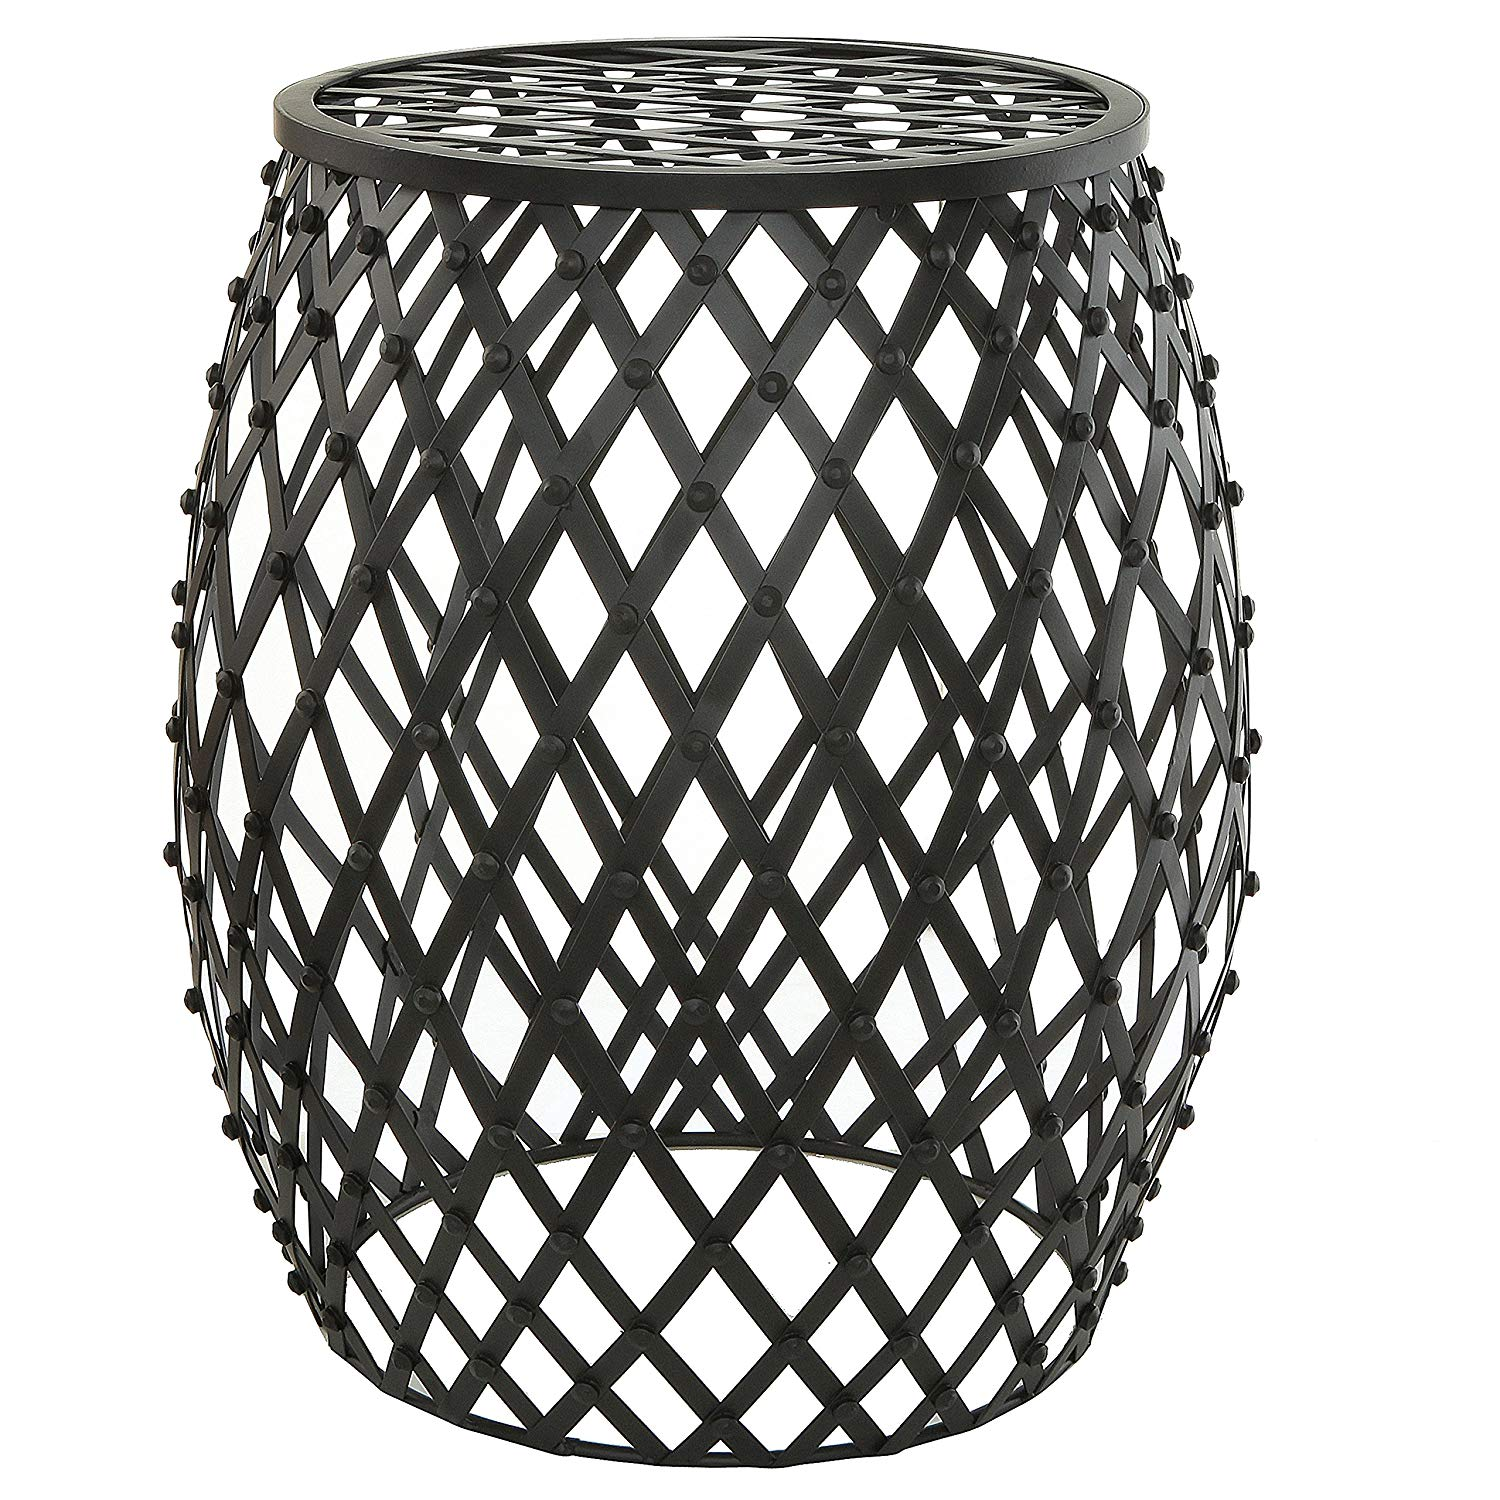 mygift bohemian chic openwork lattice design black metal garden stool accent table decorative stand outdoor small dining with leaf butler round outside storage cabinets trunk ikea